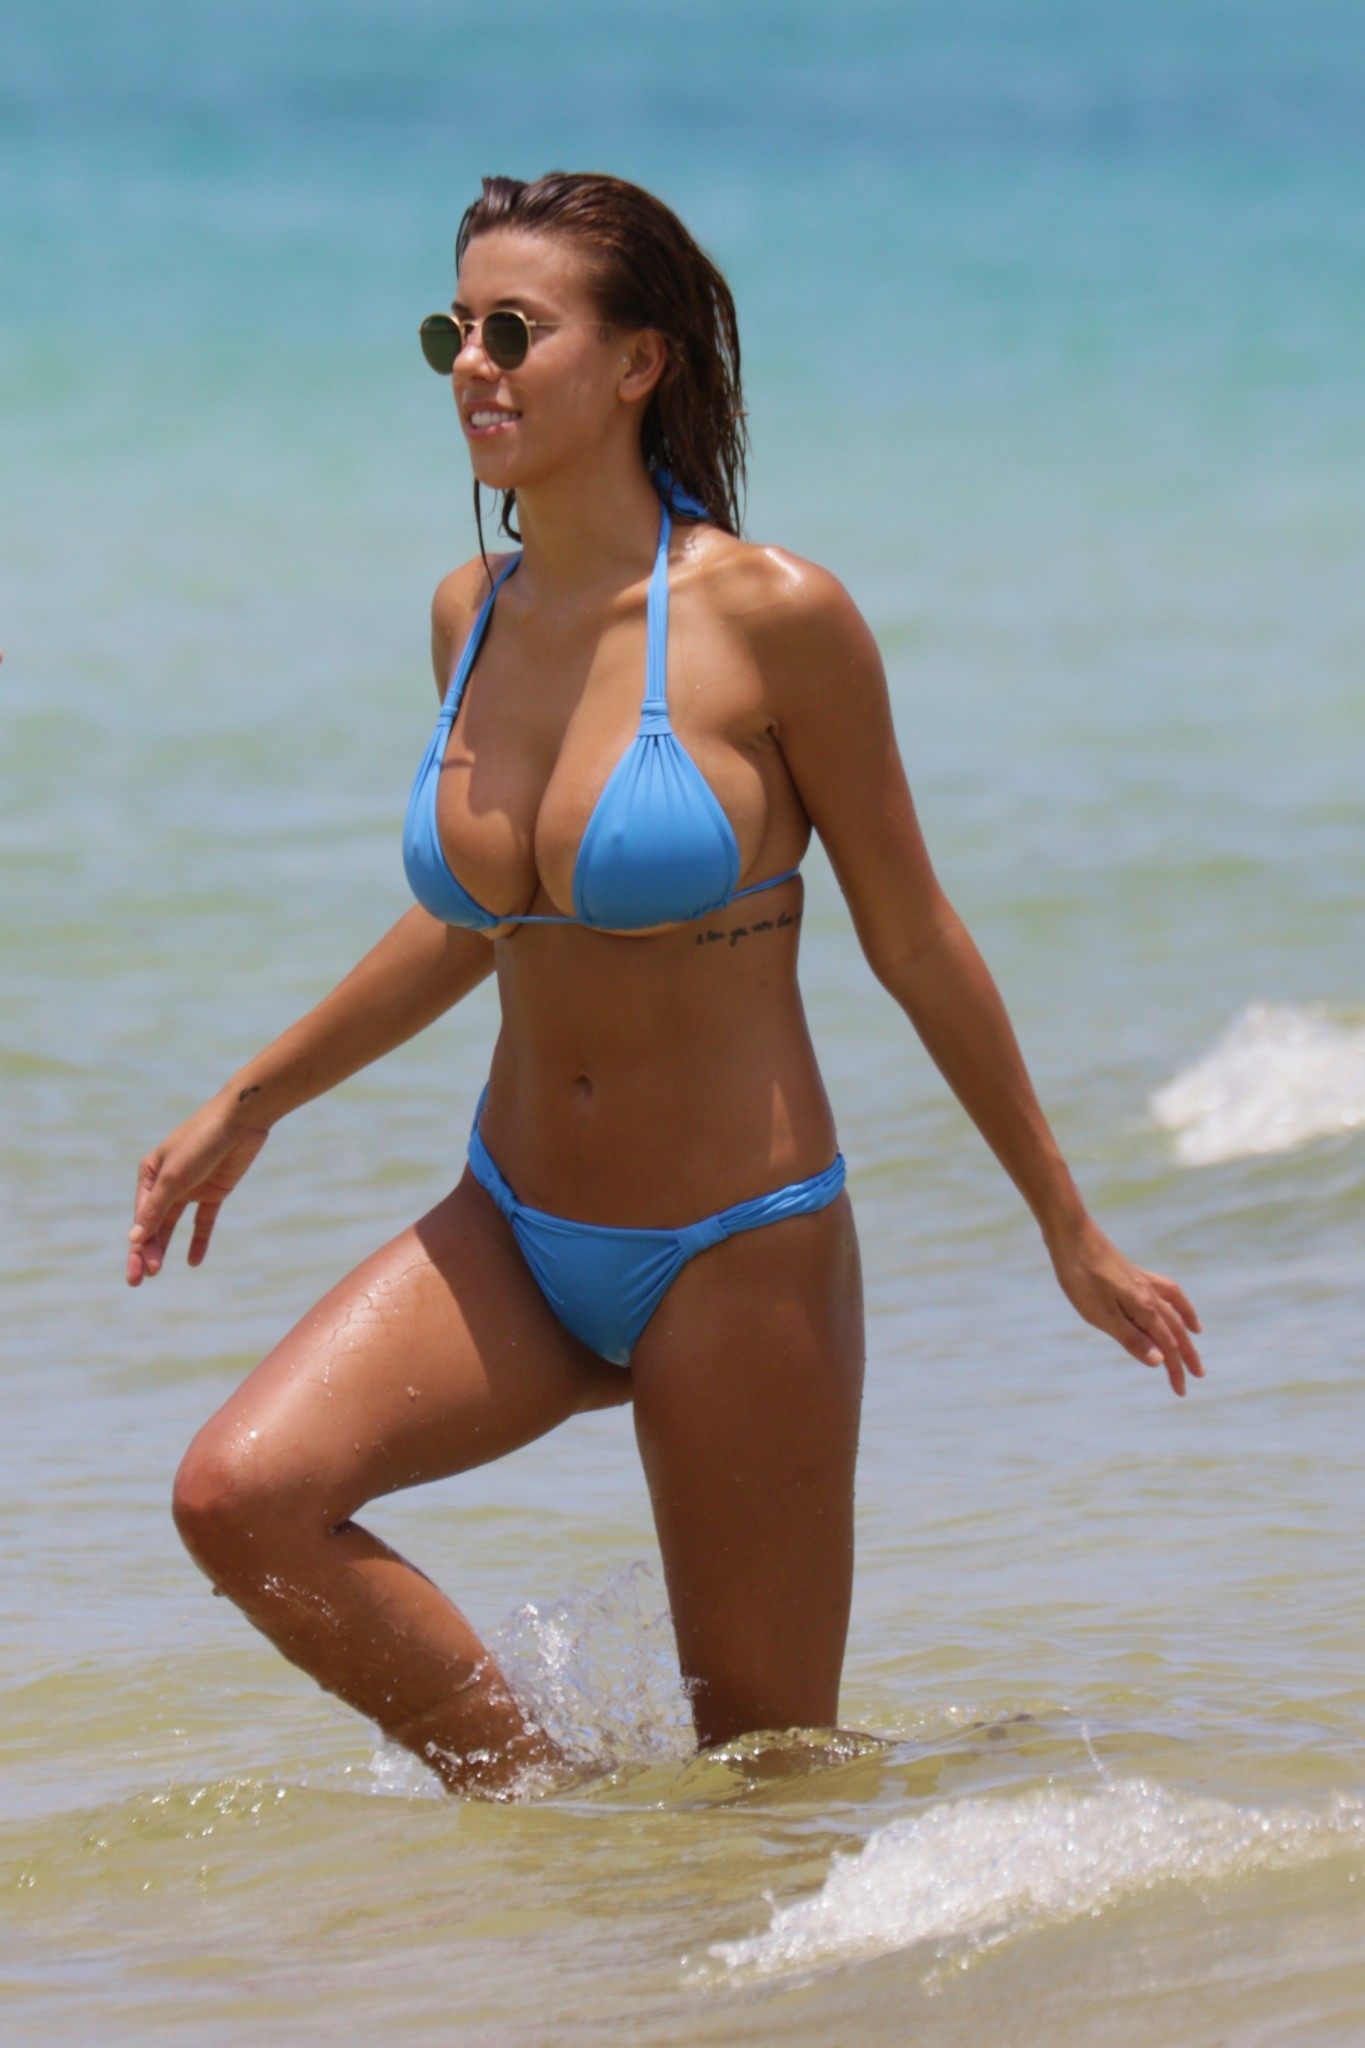 devin-brugman-wearing-a-bikini-in-miami-23